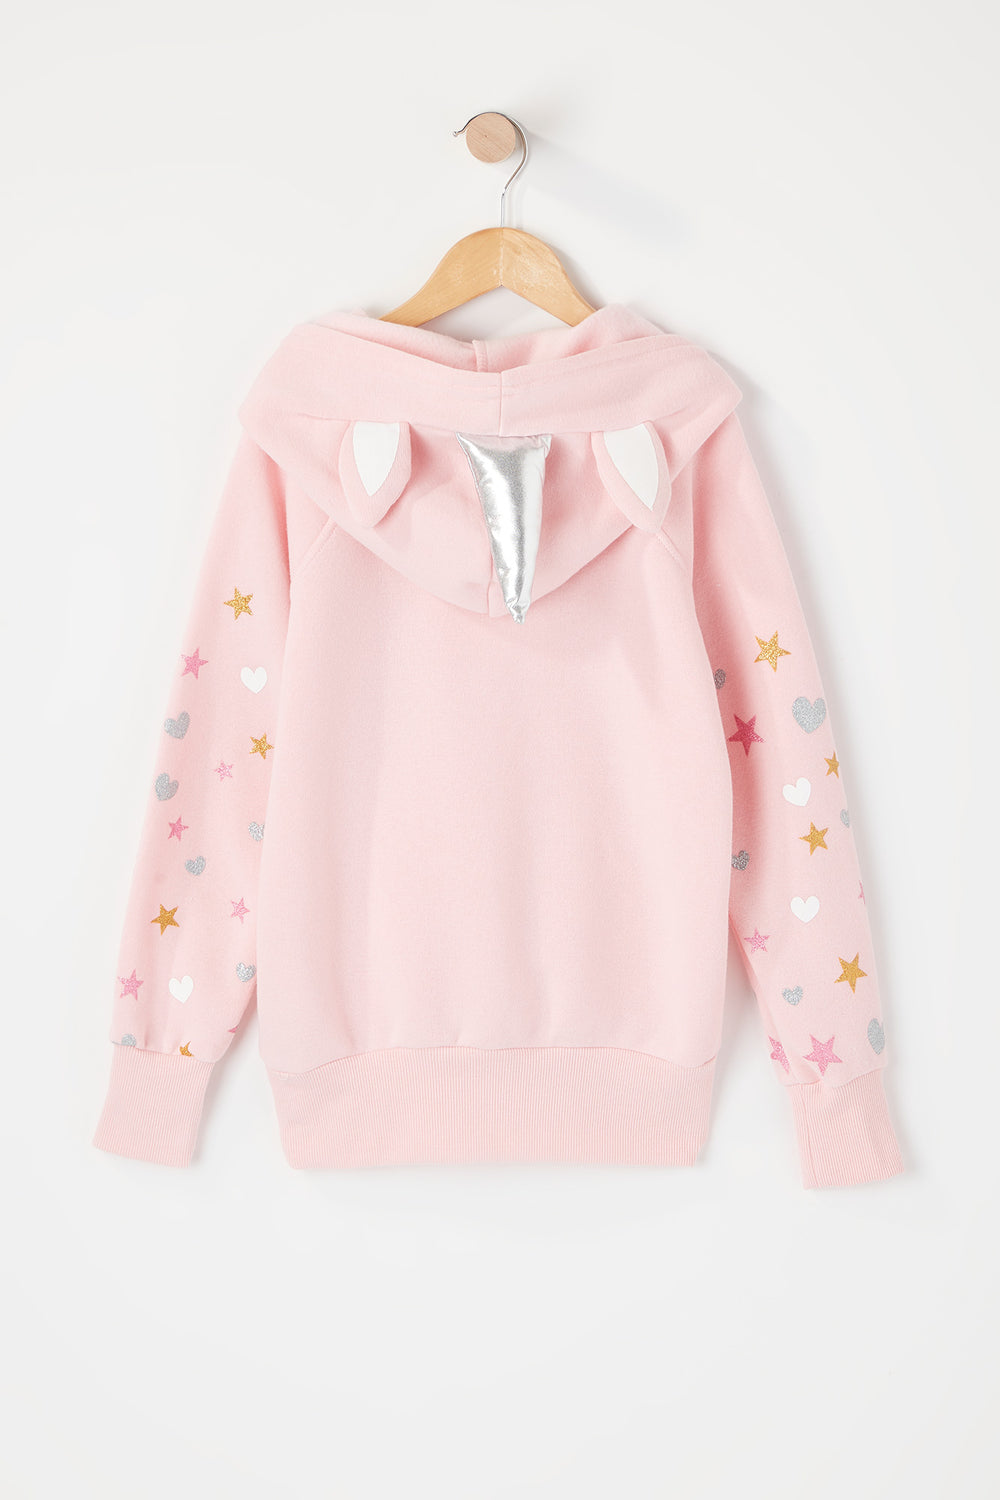 Girls Star Unicorn Graphic Character Popover Hoodie Pink